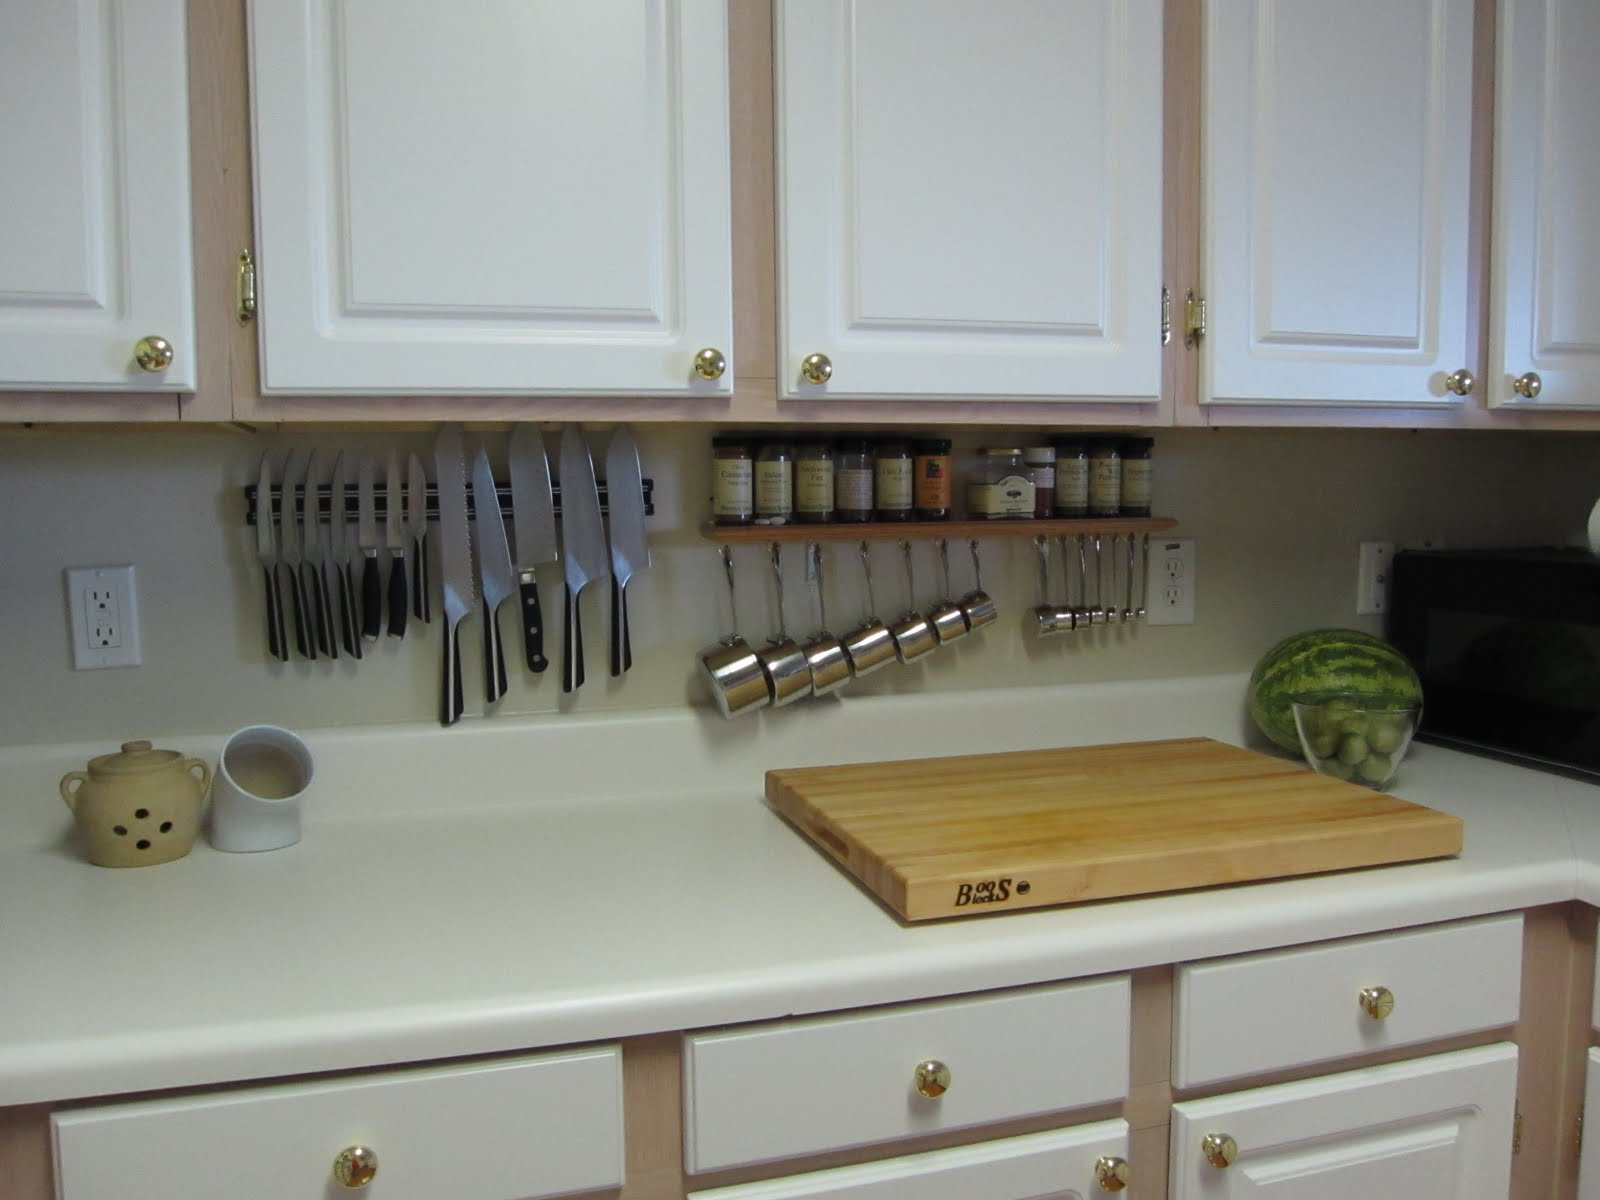 The Saucy Kitchen: Storage Solutions - Mini Pot Rack